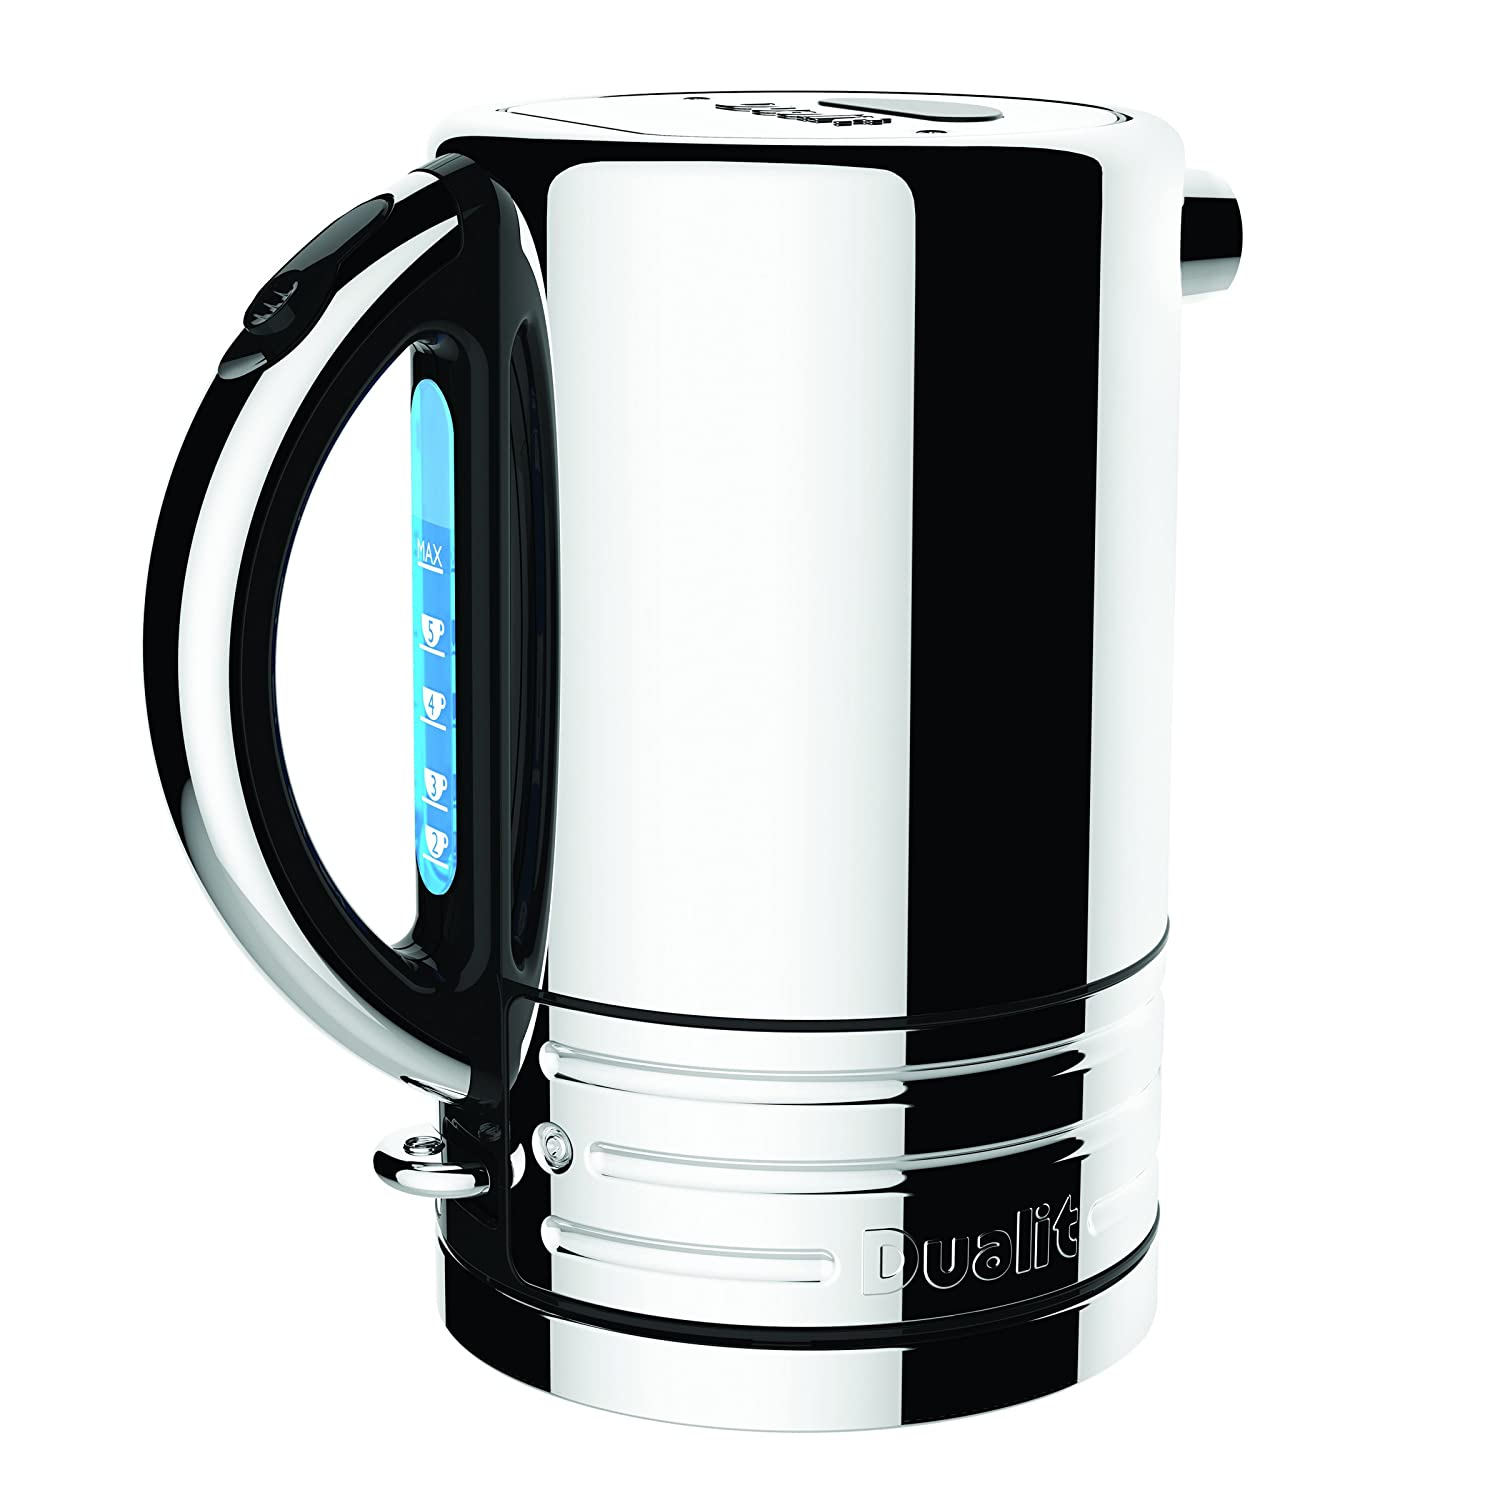 Quiet Electric Kettle Reviews: Secura SWK 1701DB Stainless Double Electric